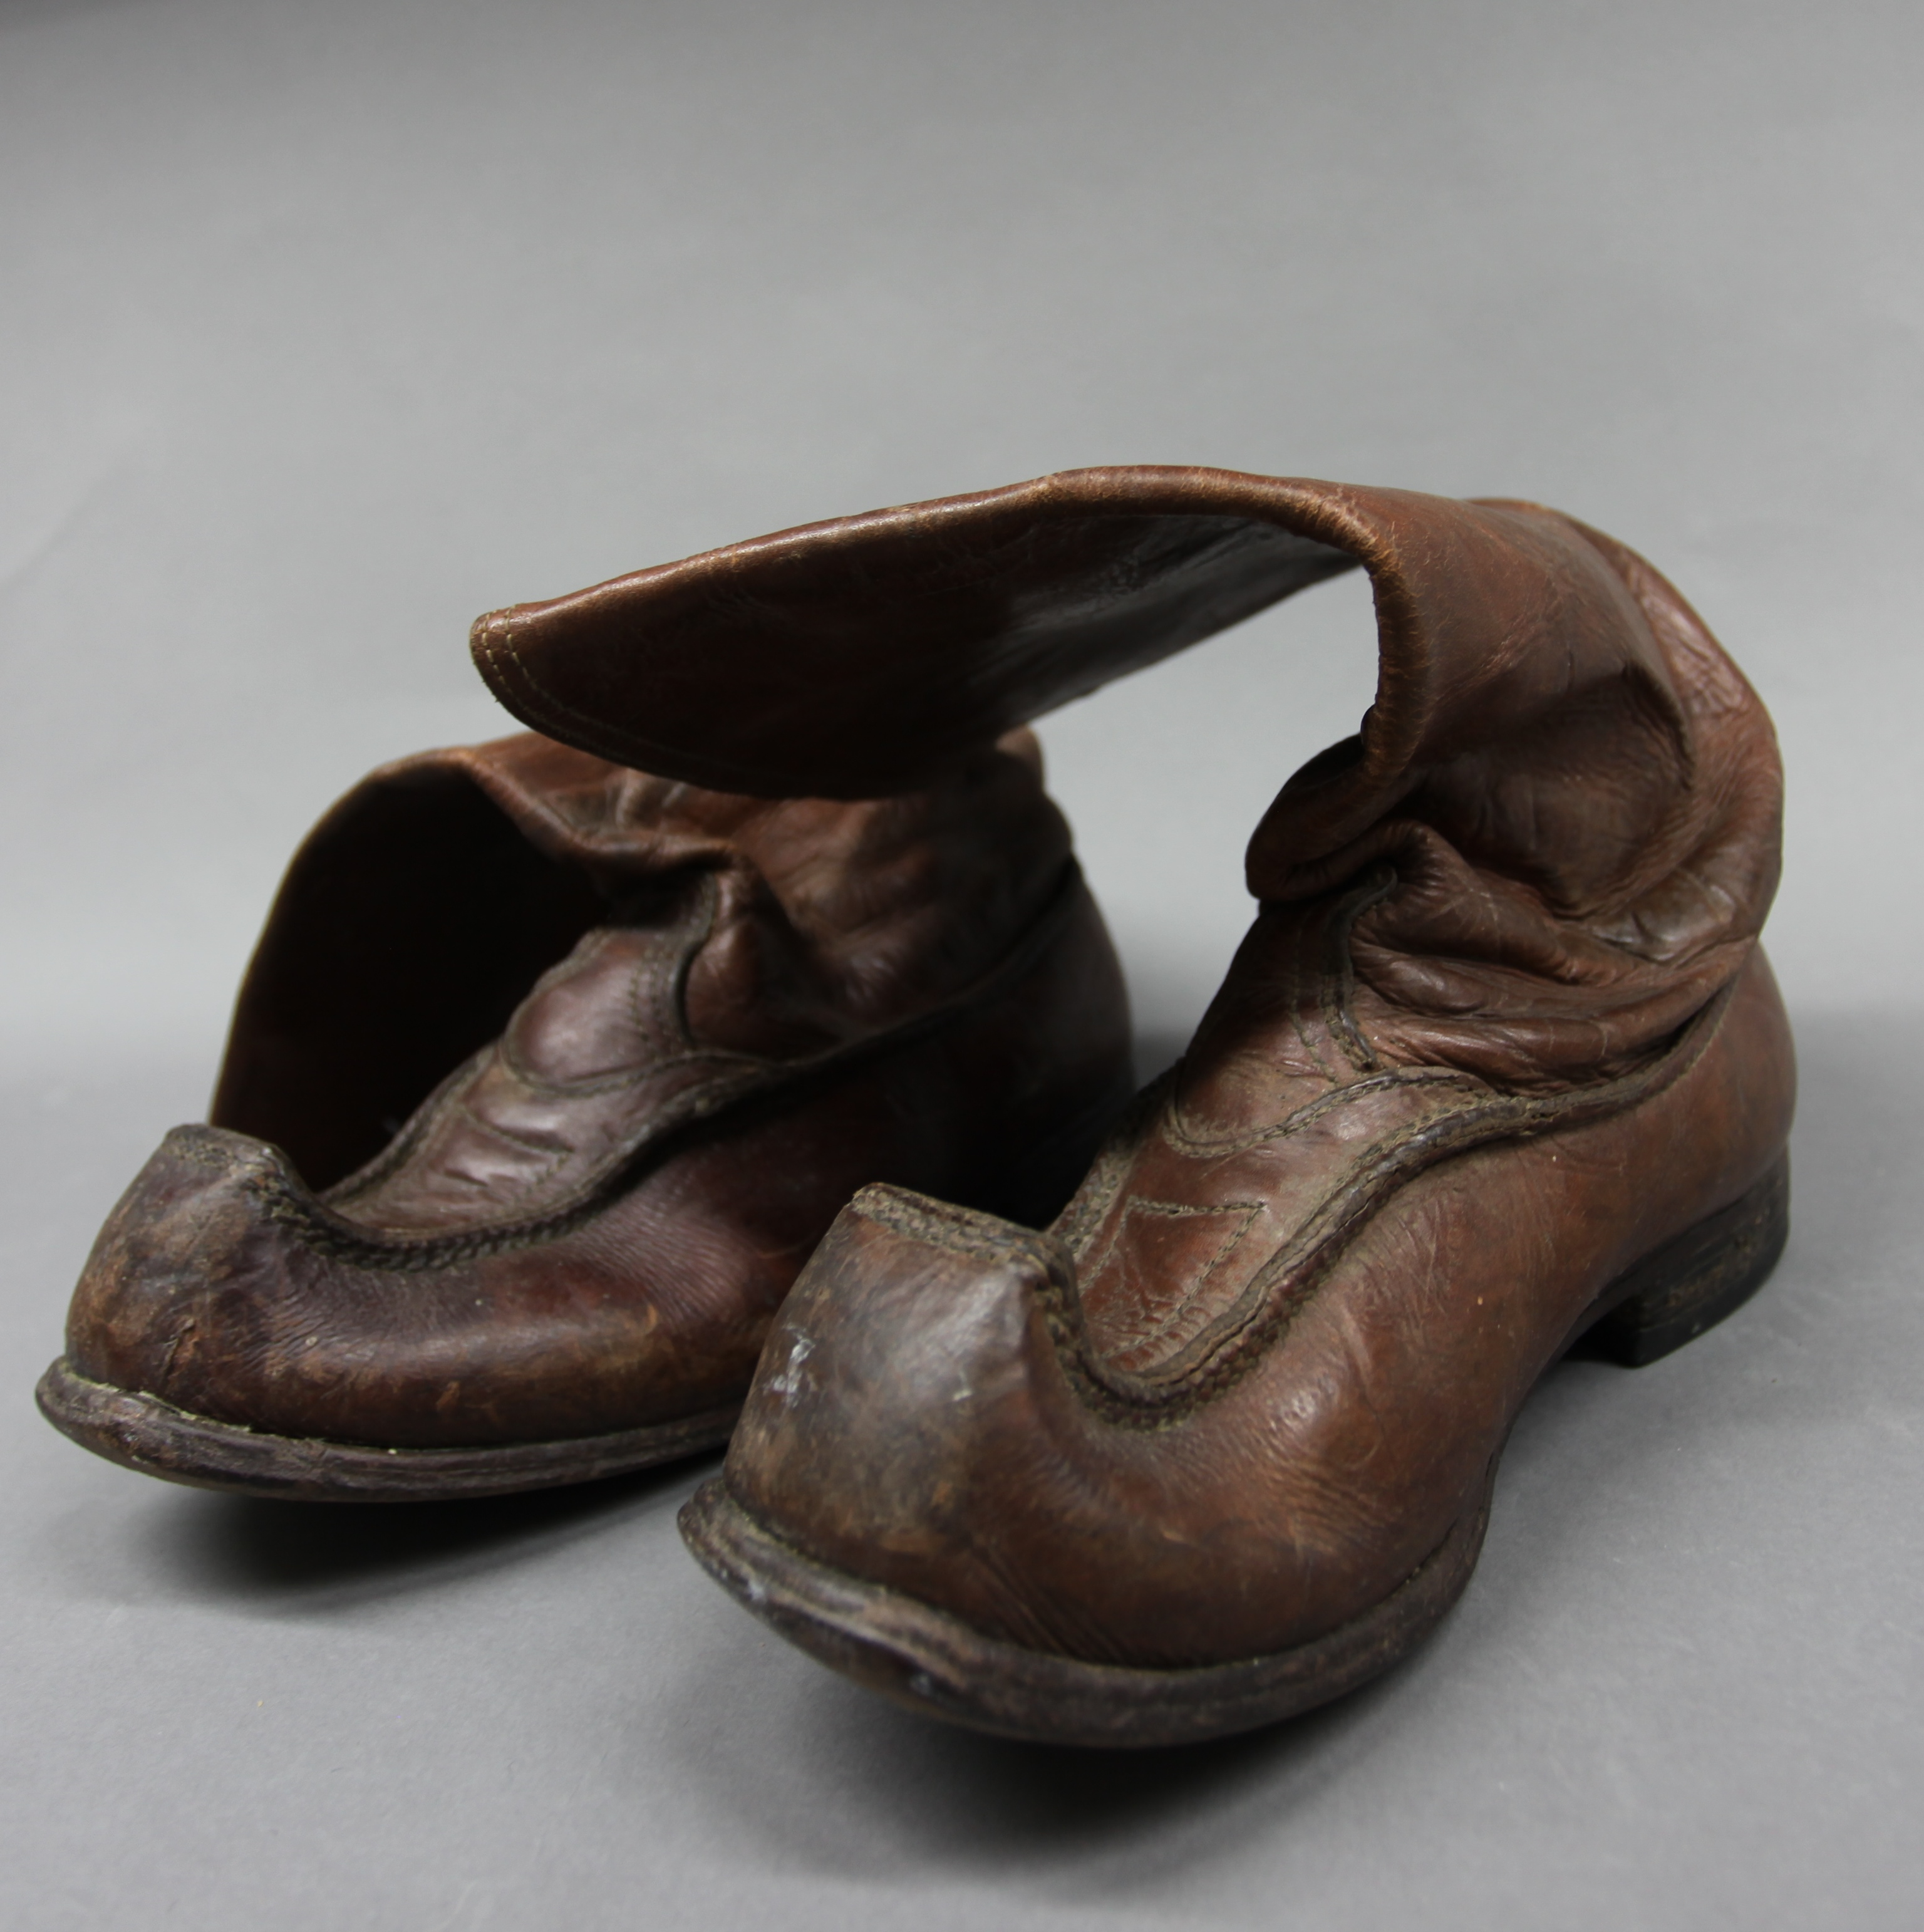 Saami boots, from the Scott Polar Museum, Cambridge